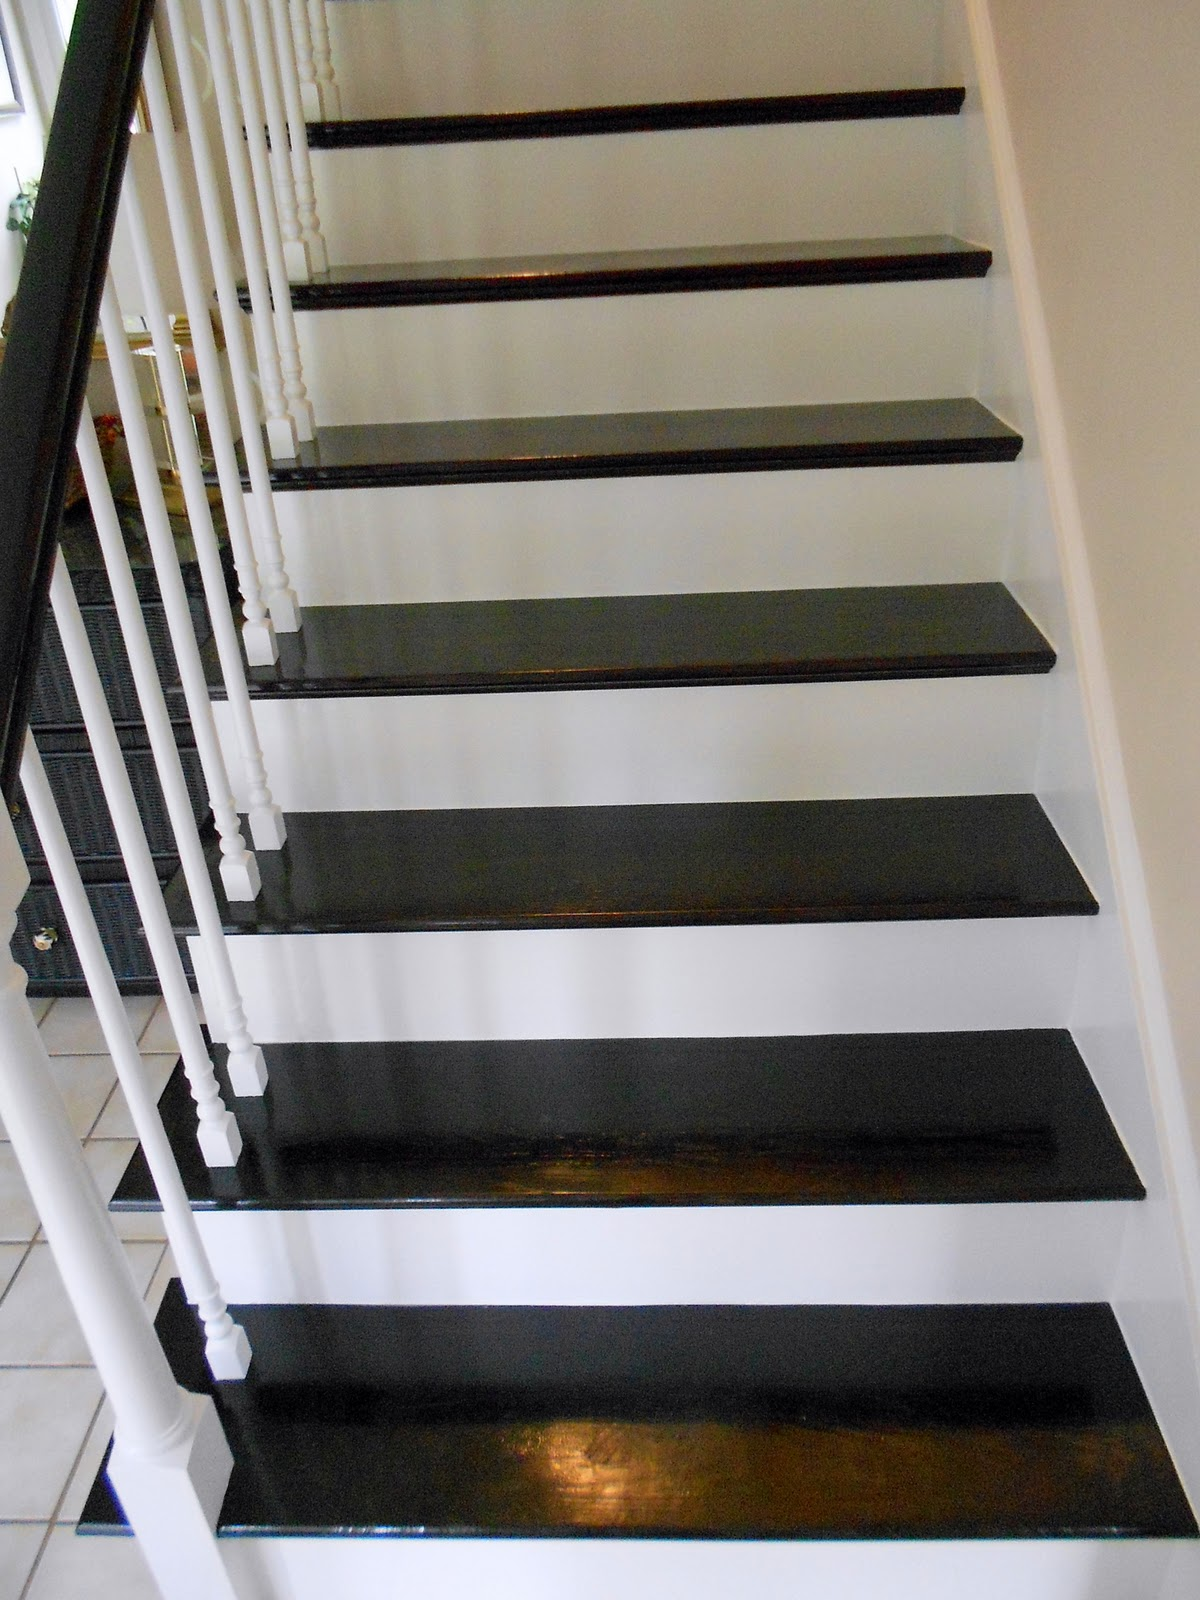 Refinishing Hardwood Stairs Shine Your Light